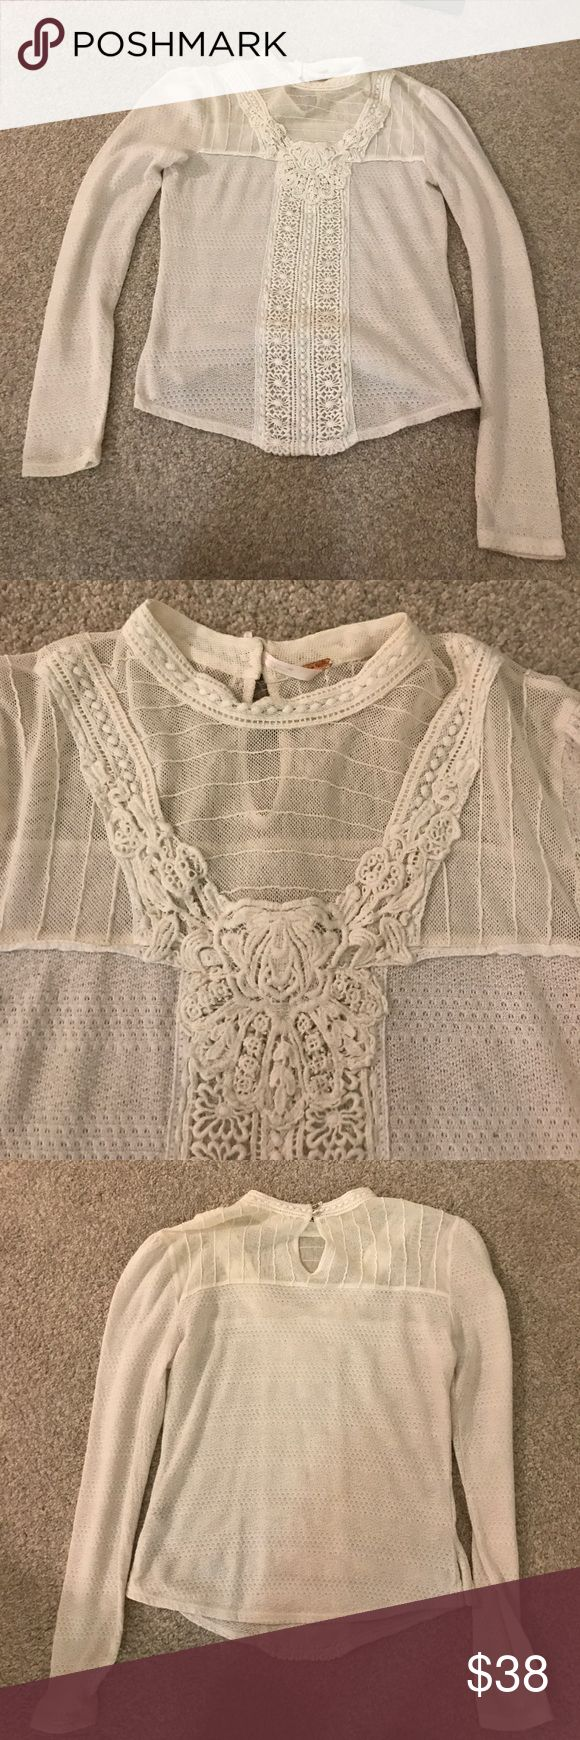 Free people lace cream long sleeve top size S Excellent condition free people lace detailed long sleeve top in light cream color. No wear or tear. Size small. Free People Tops Blouses